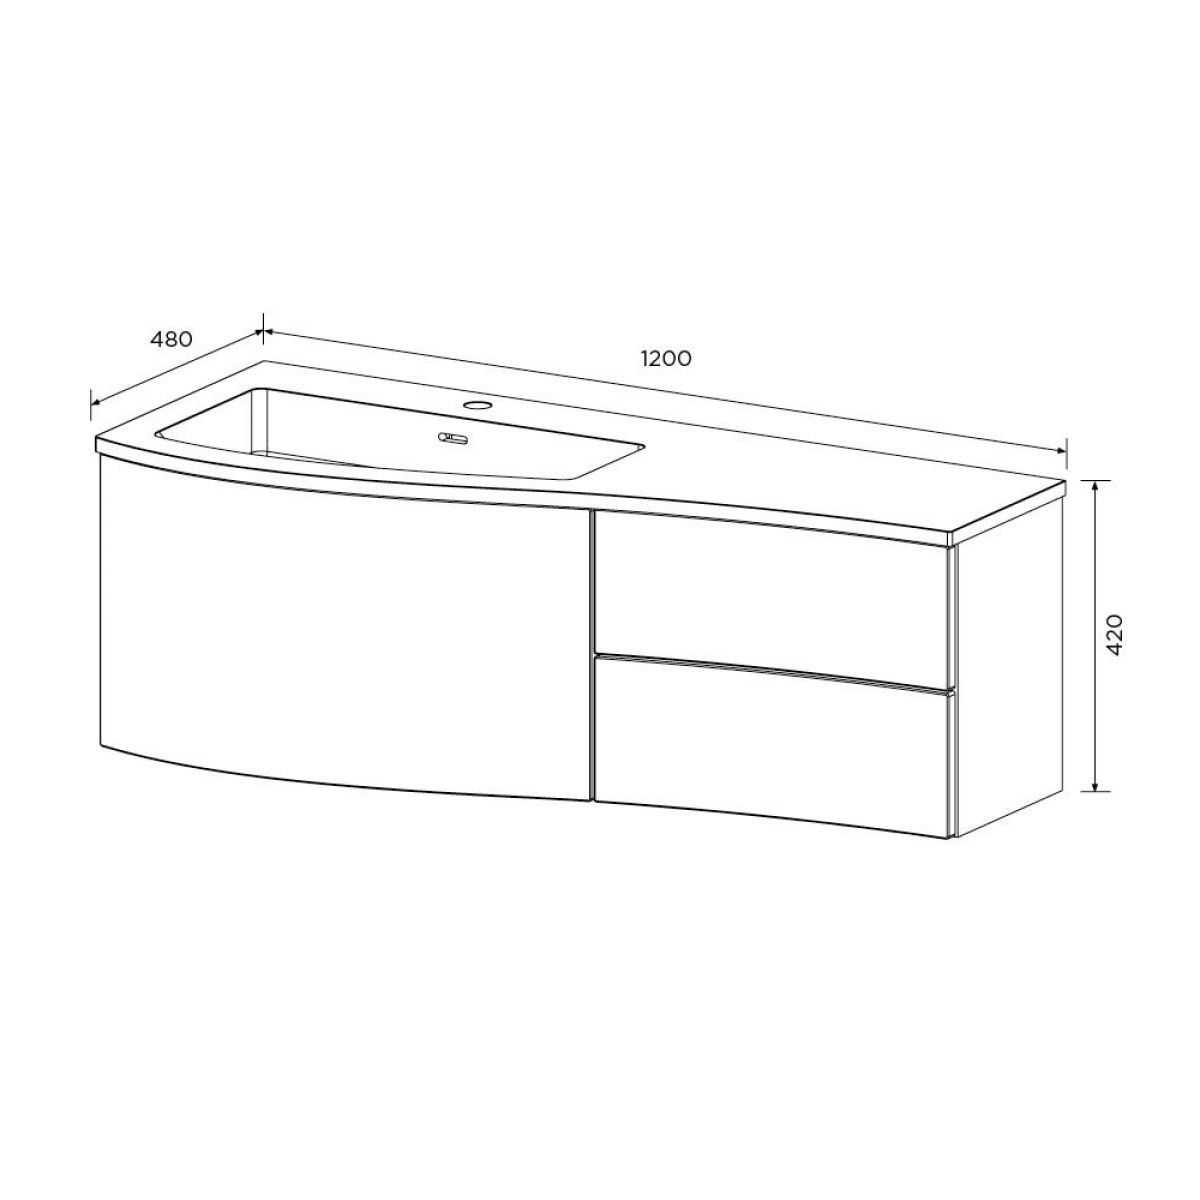 Elation Kiyo Indigo Vanity Unit 1200mm Left Handed Dimensions